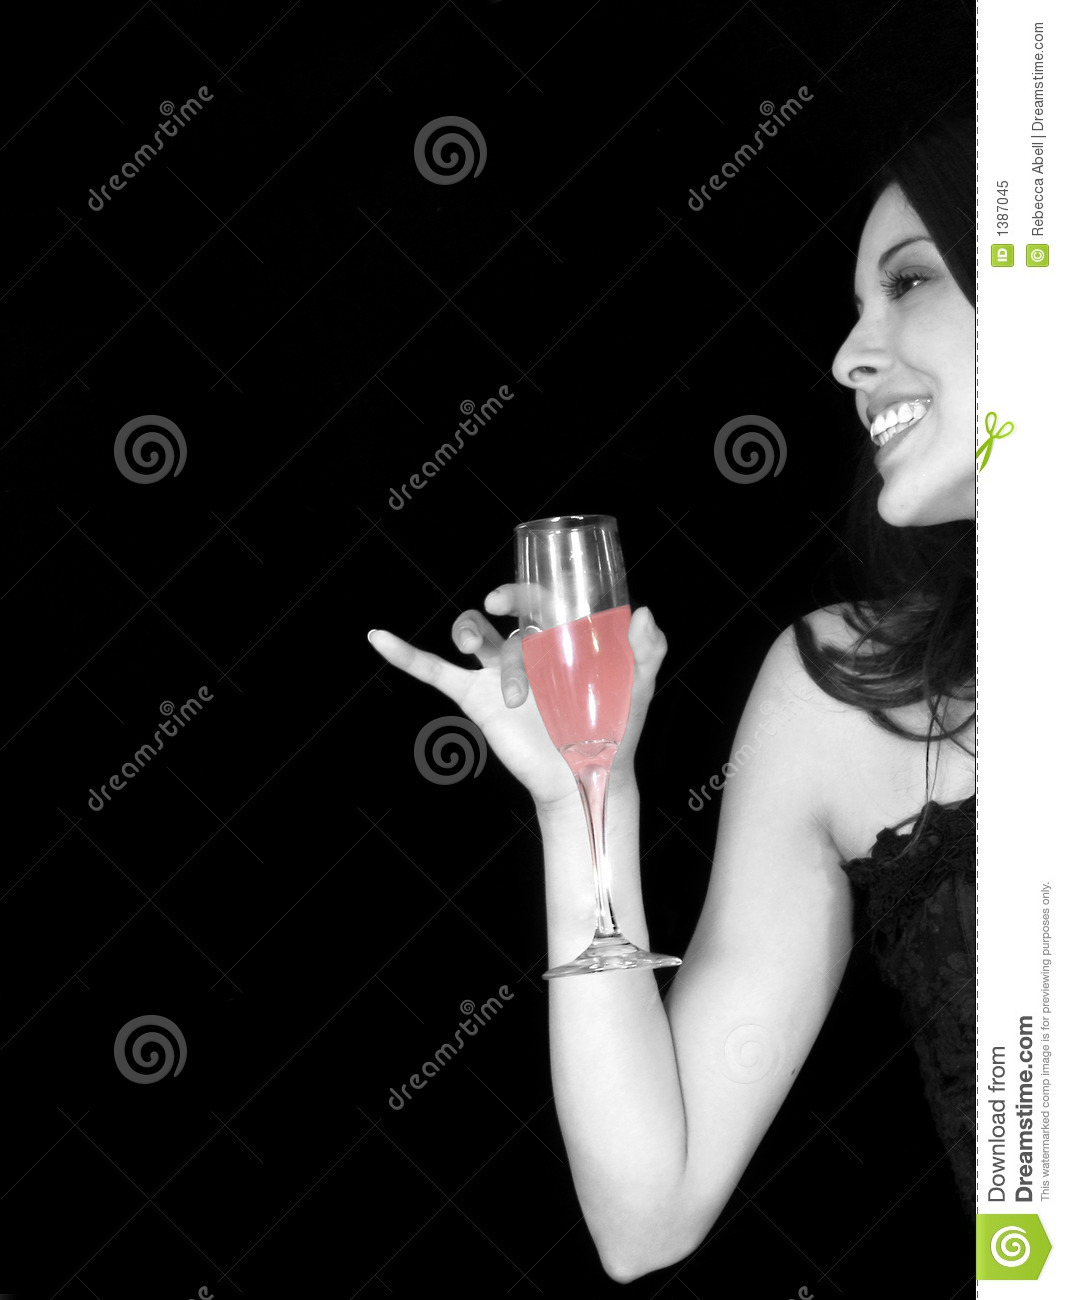 Classy And Glamorous Photo: Classy Party Girl Stock Image. Image Of Adult, Glamour